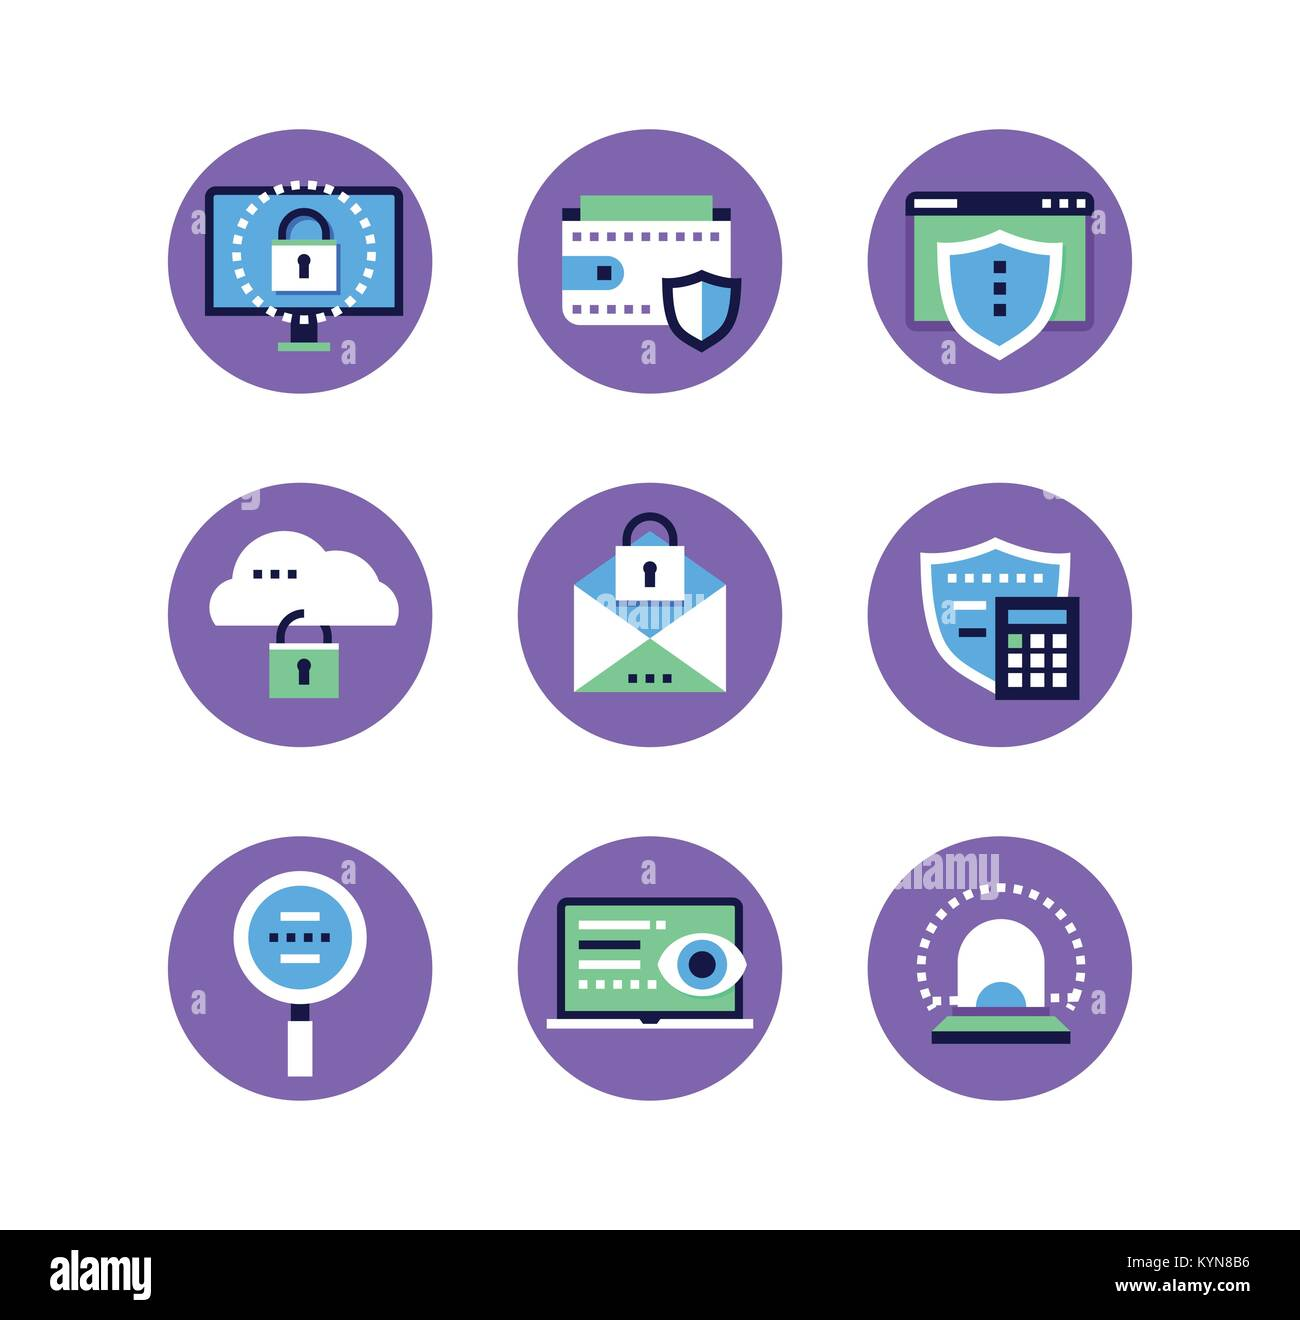 Information Security Data Protection Set Of Flat Design Style Icons